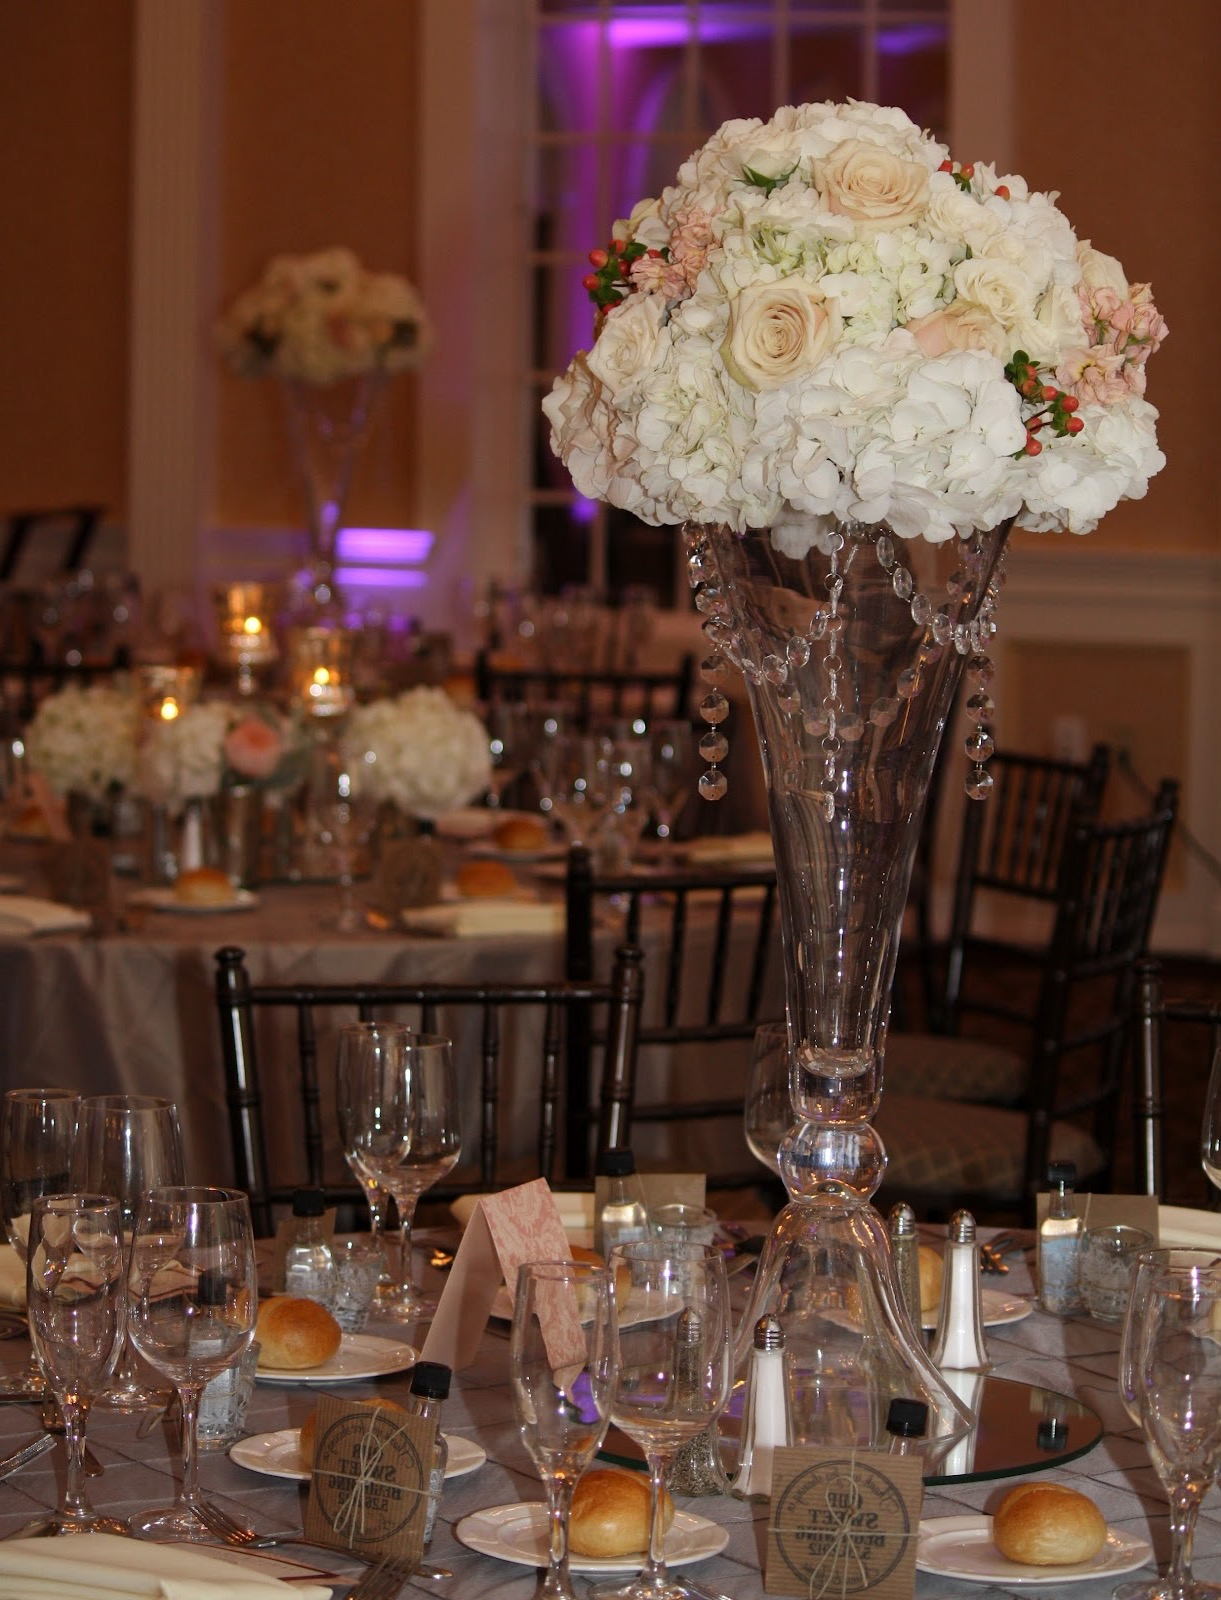 Tall White Flower And Glass Vase Arrangements Centerpieces (Image 27 of 30)